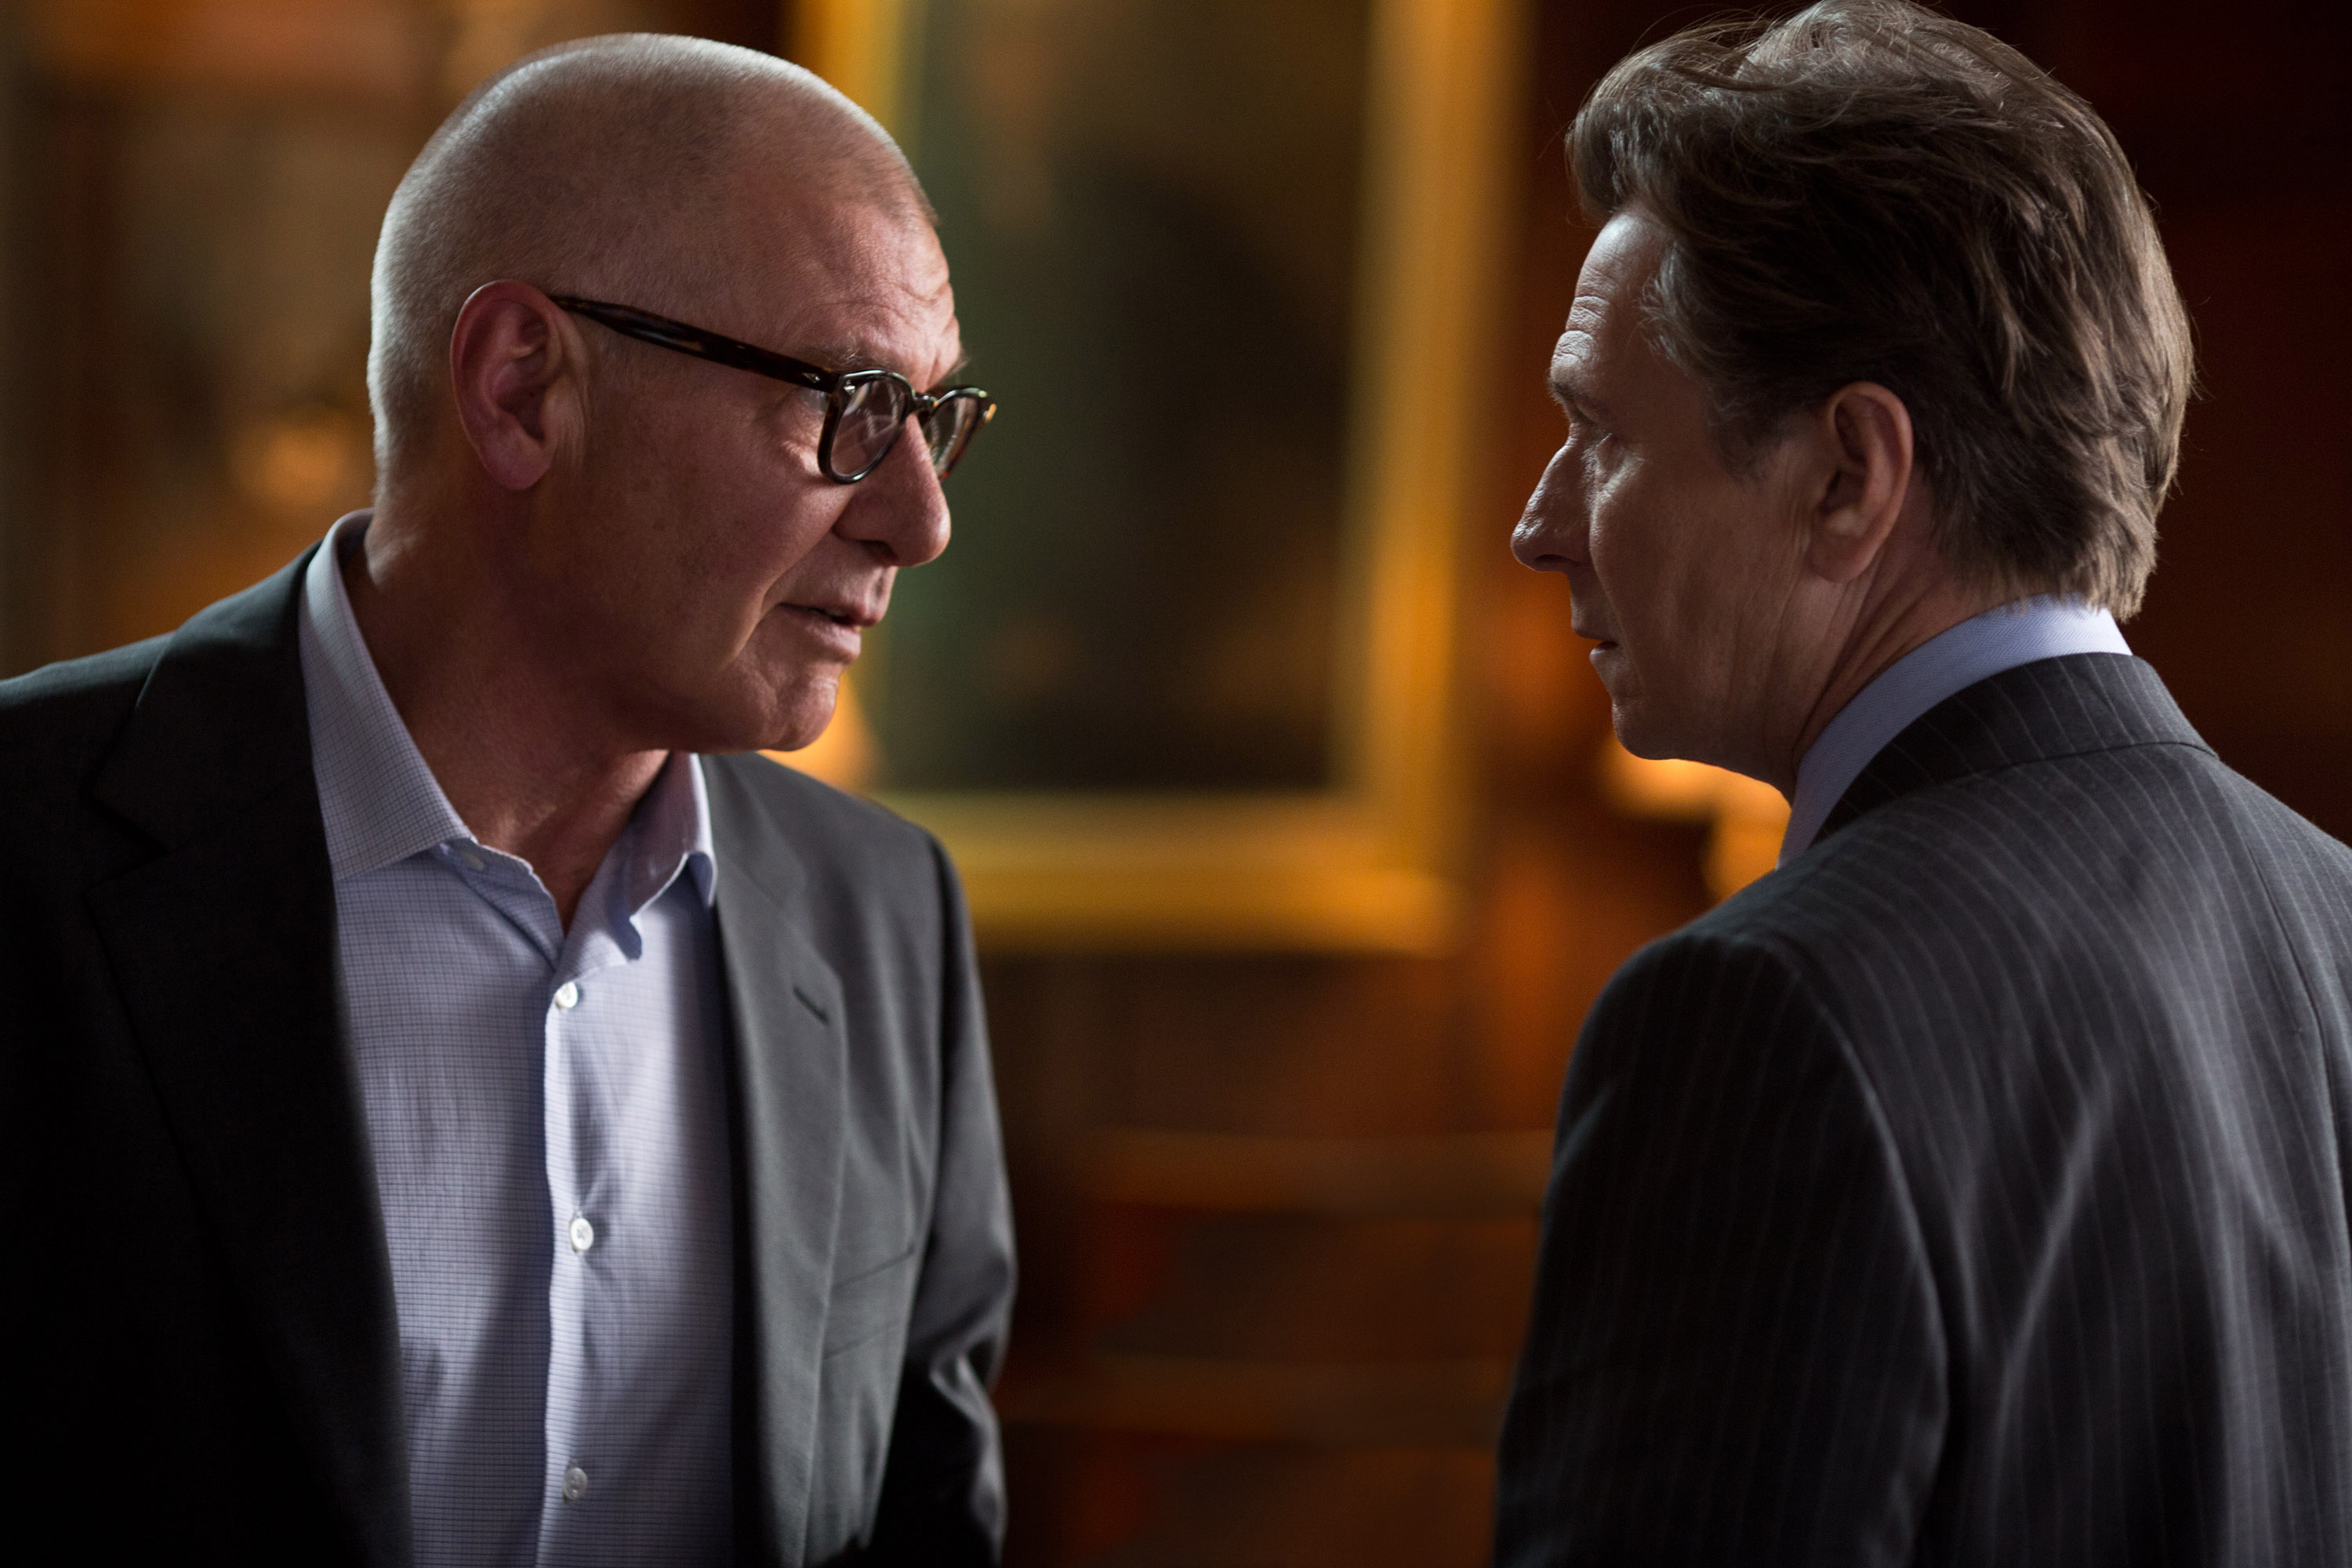 harrison ford and gary oldman in paranoia Interview with Paranoia Director Robert Luketic